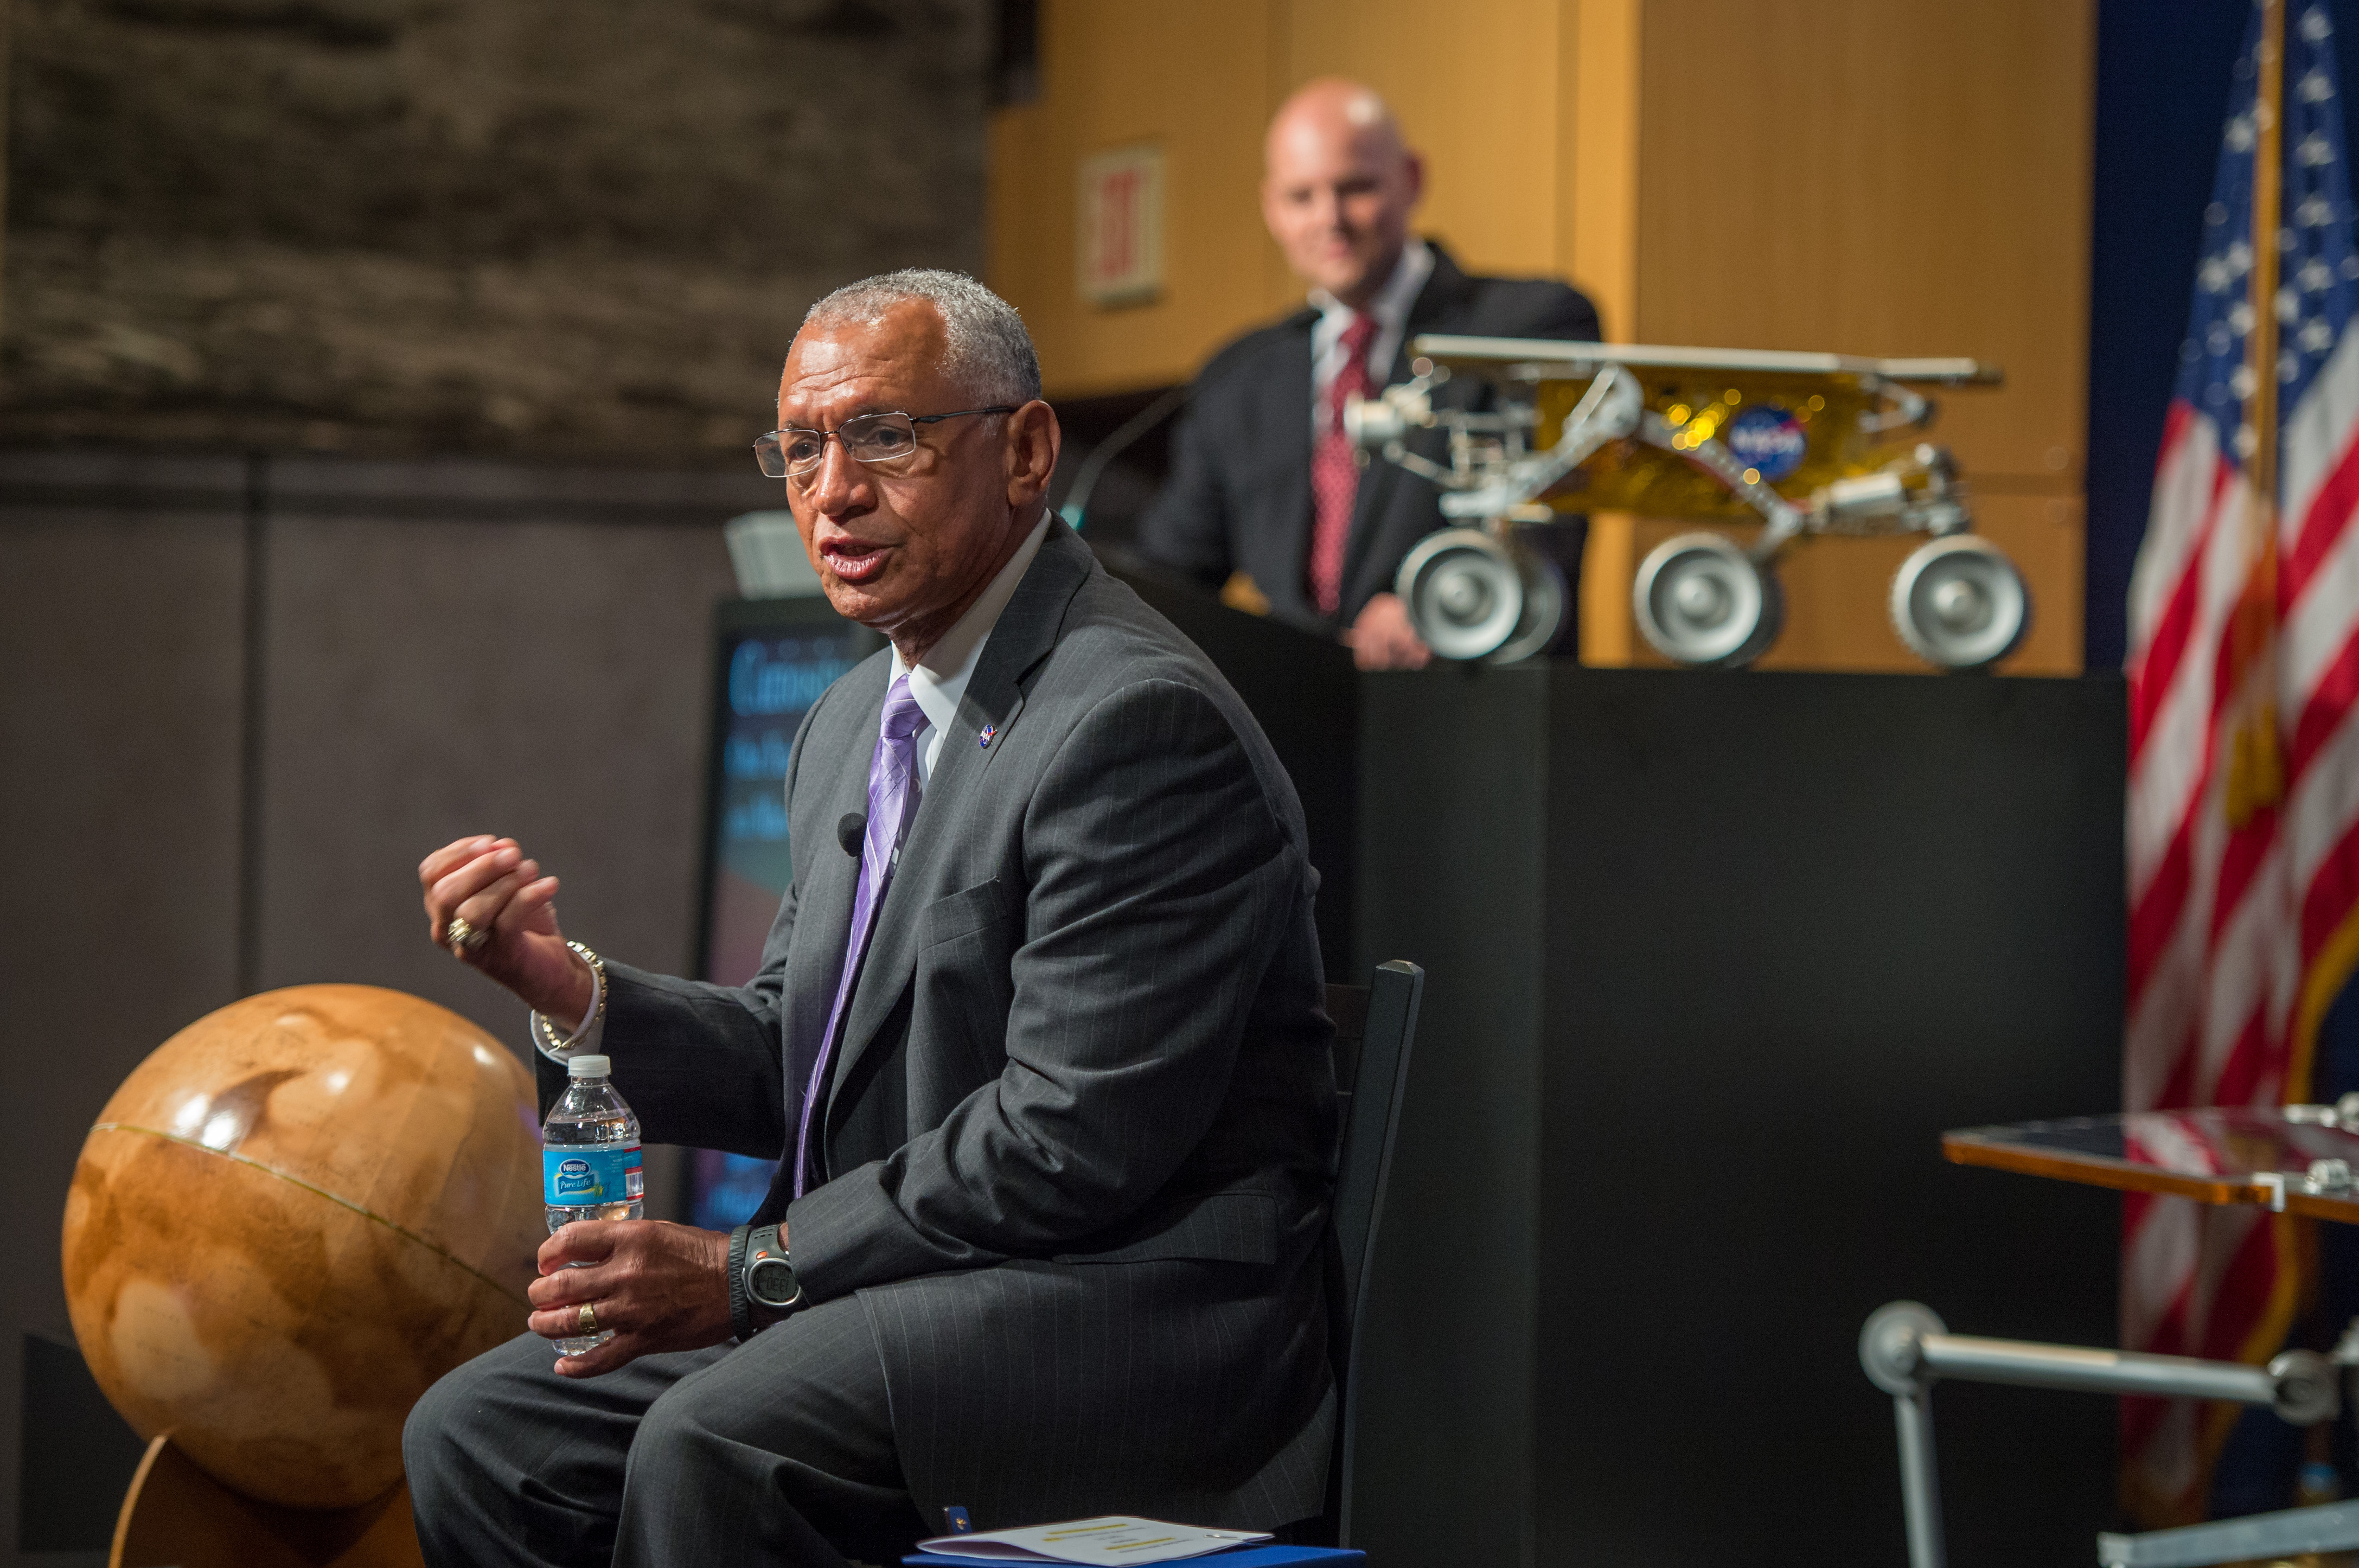 Bolden Celebrates at Curiosity First Anniversary Event